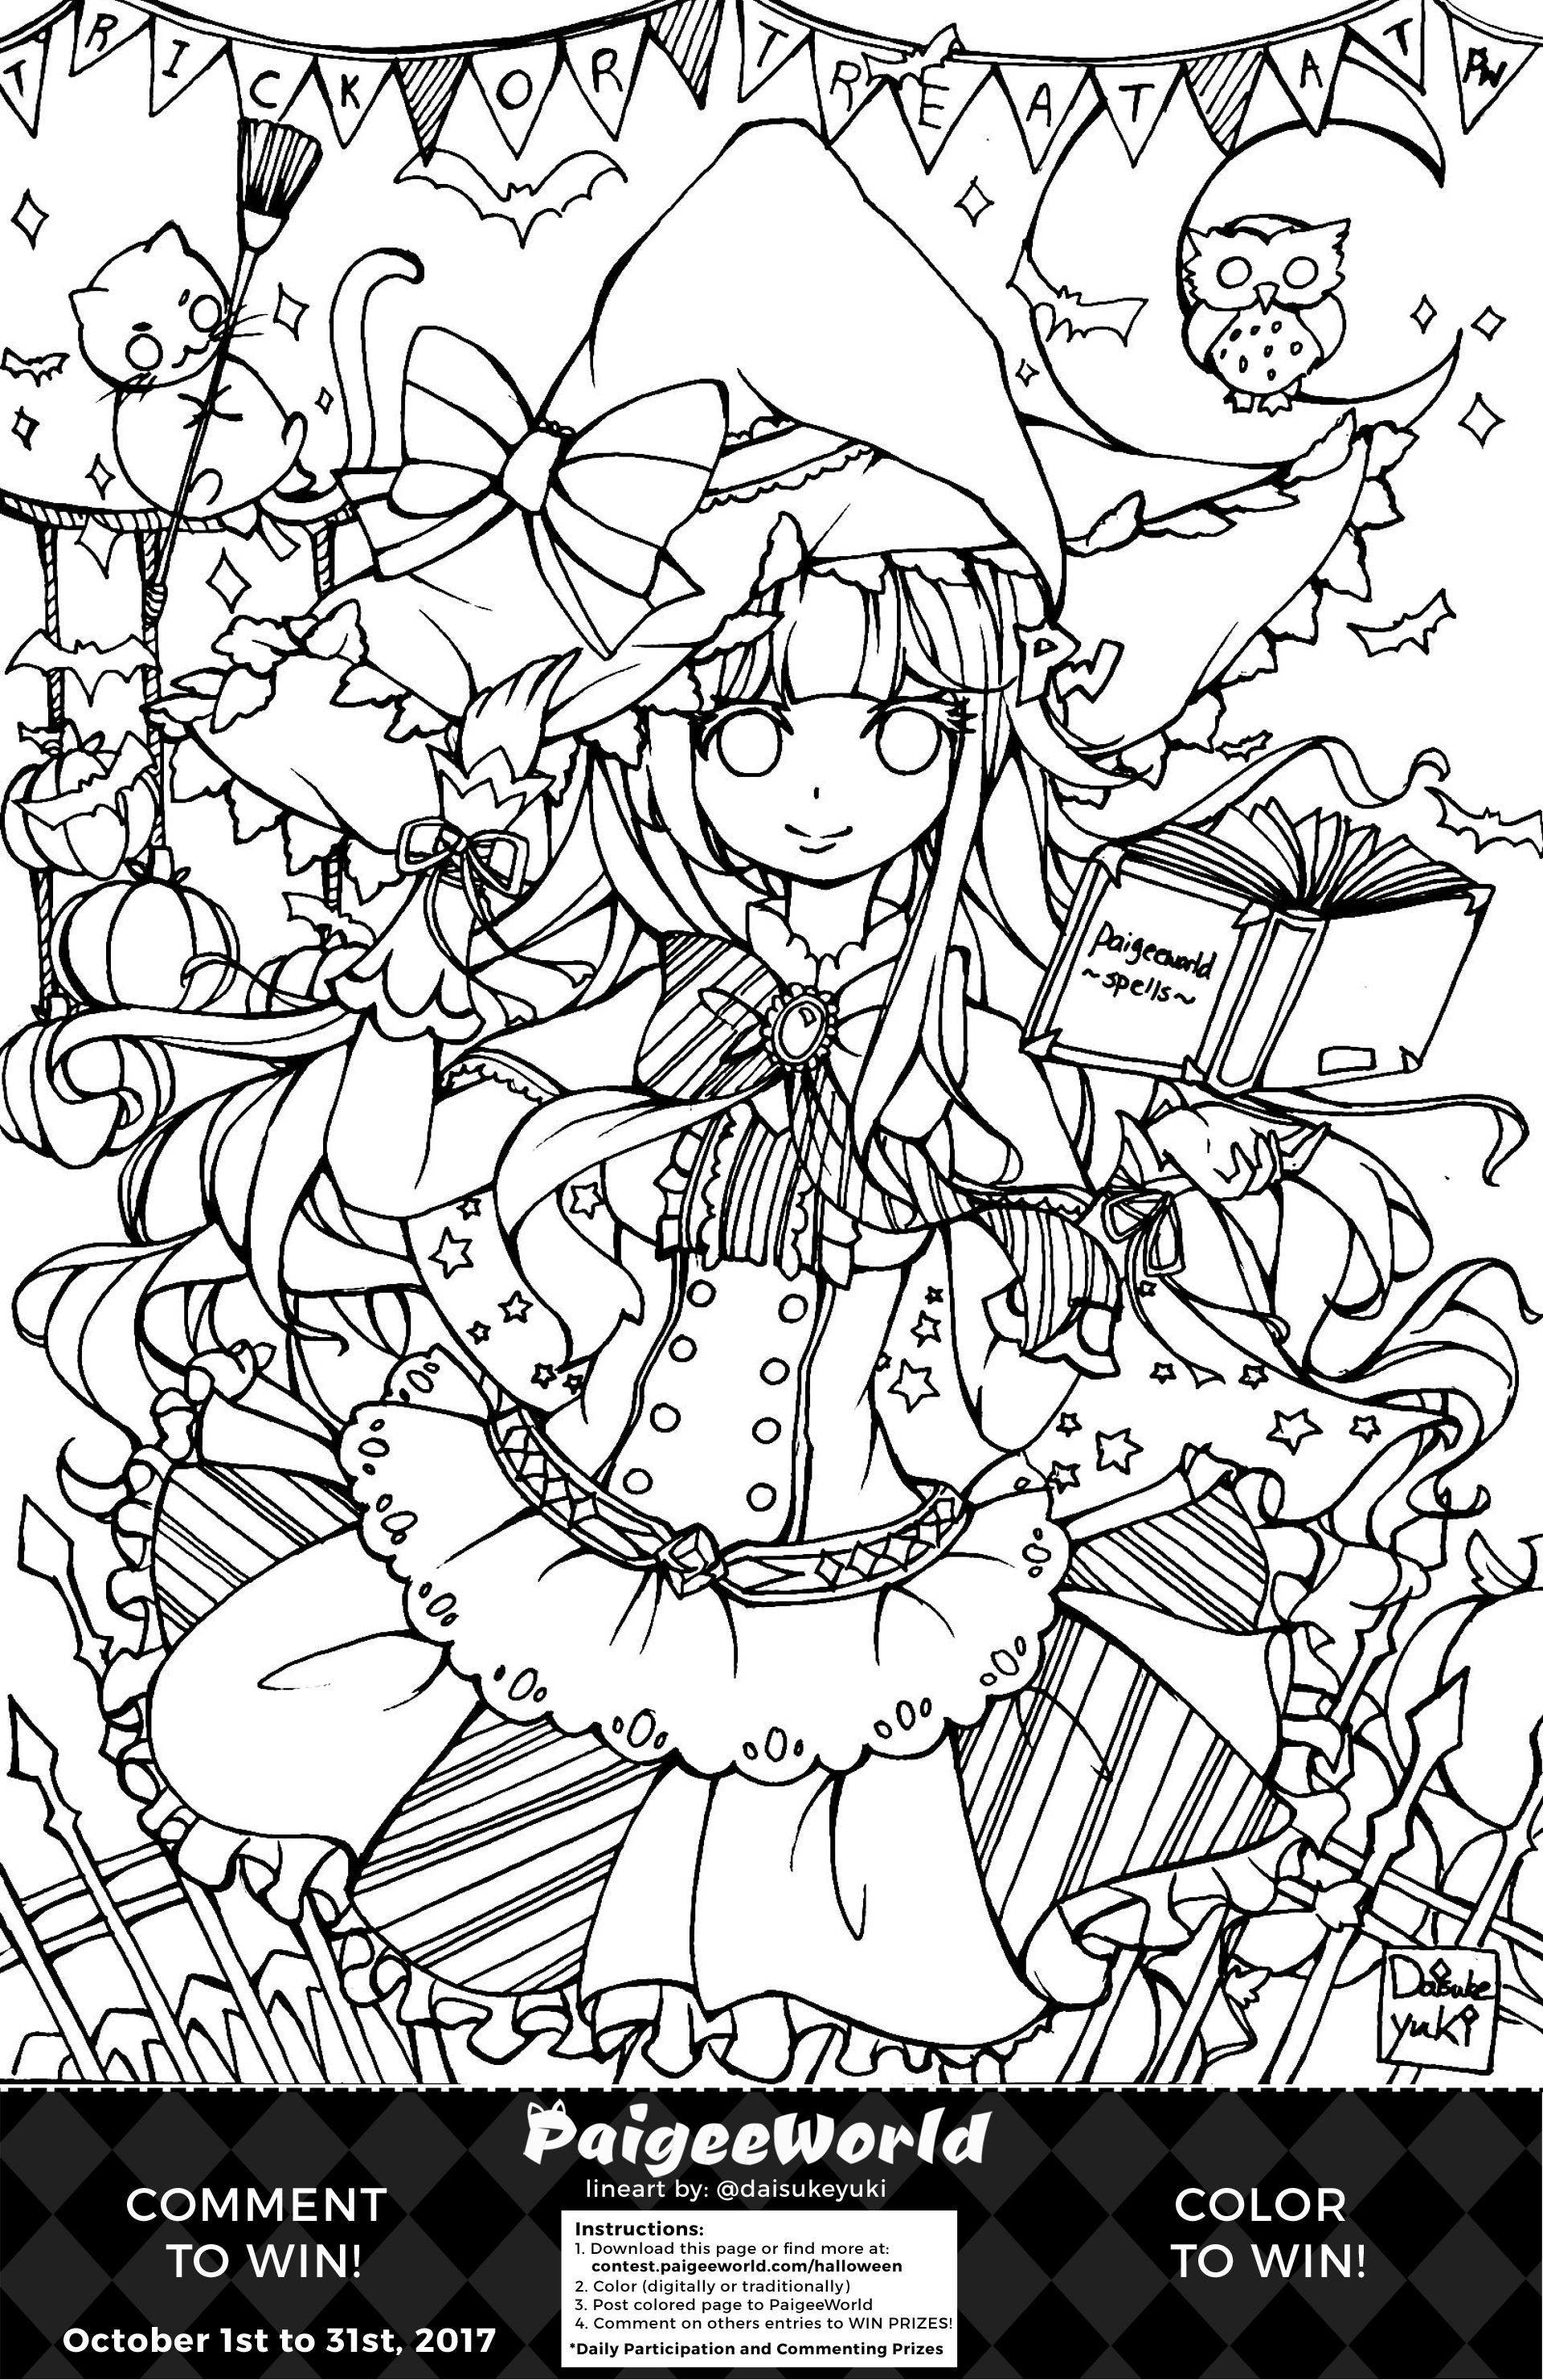 Coloring pages for halloween coloring contest - Paigeeworld Halloween Coloring Page By Paigeedraw Paigeeworld Halloween Coloring Page By Paigeedraw